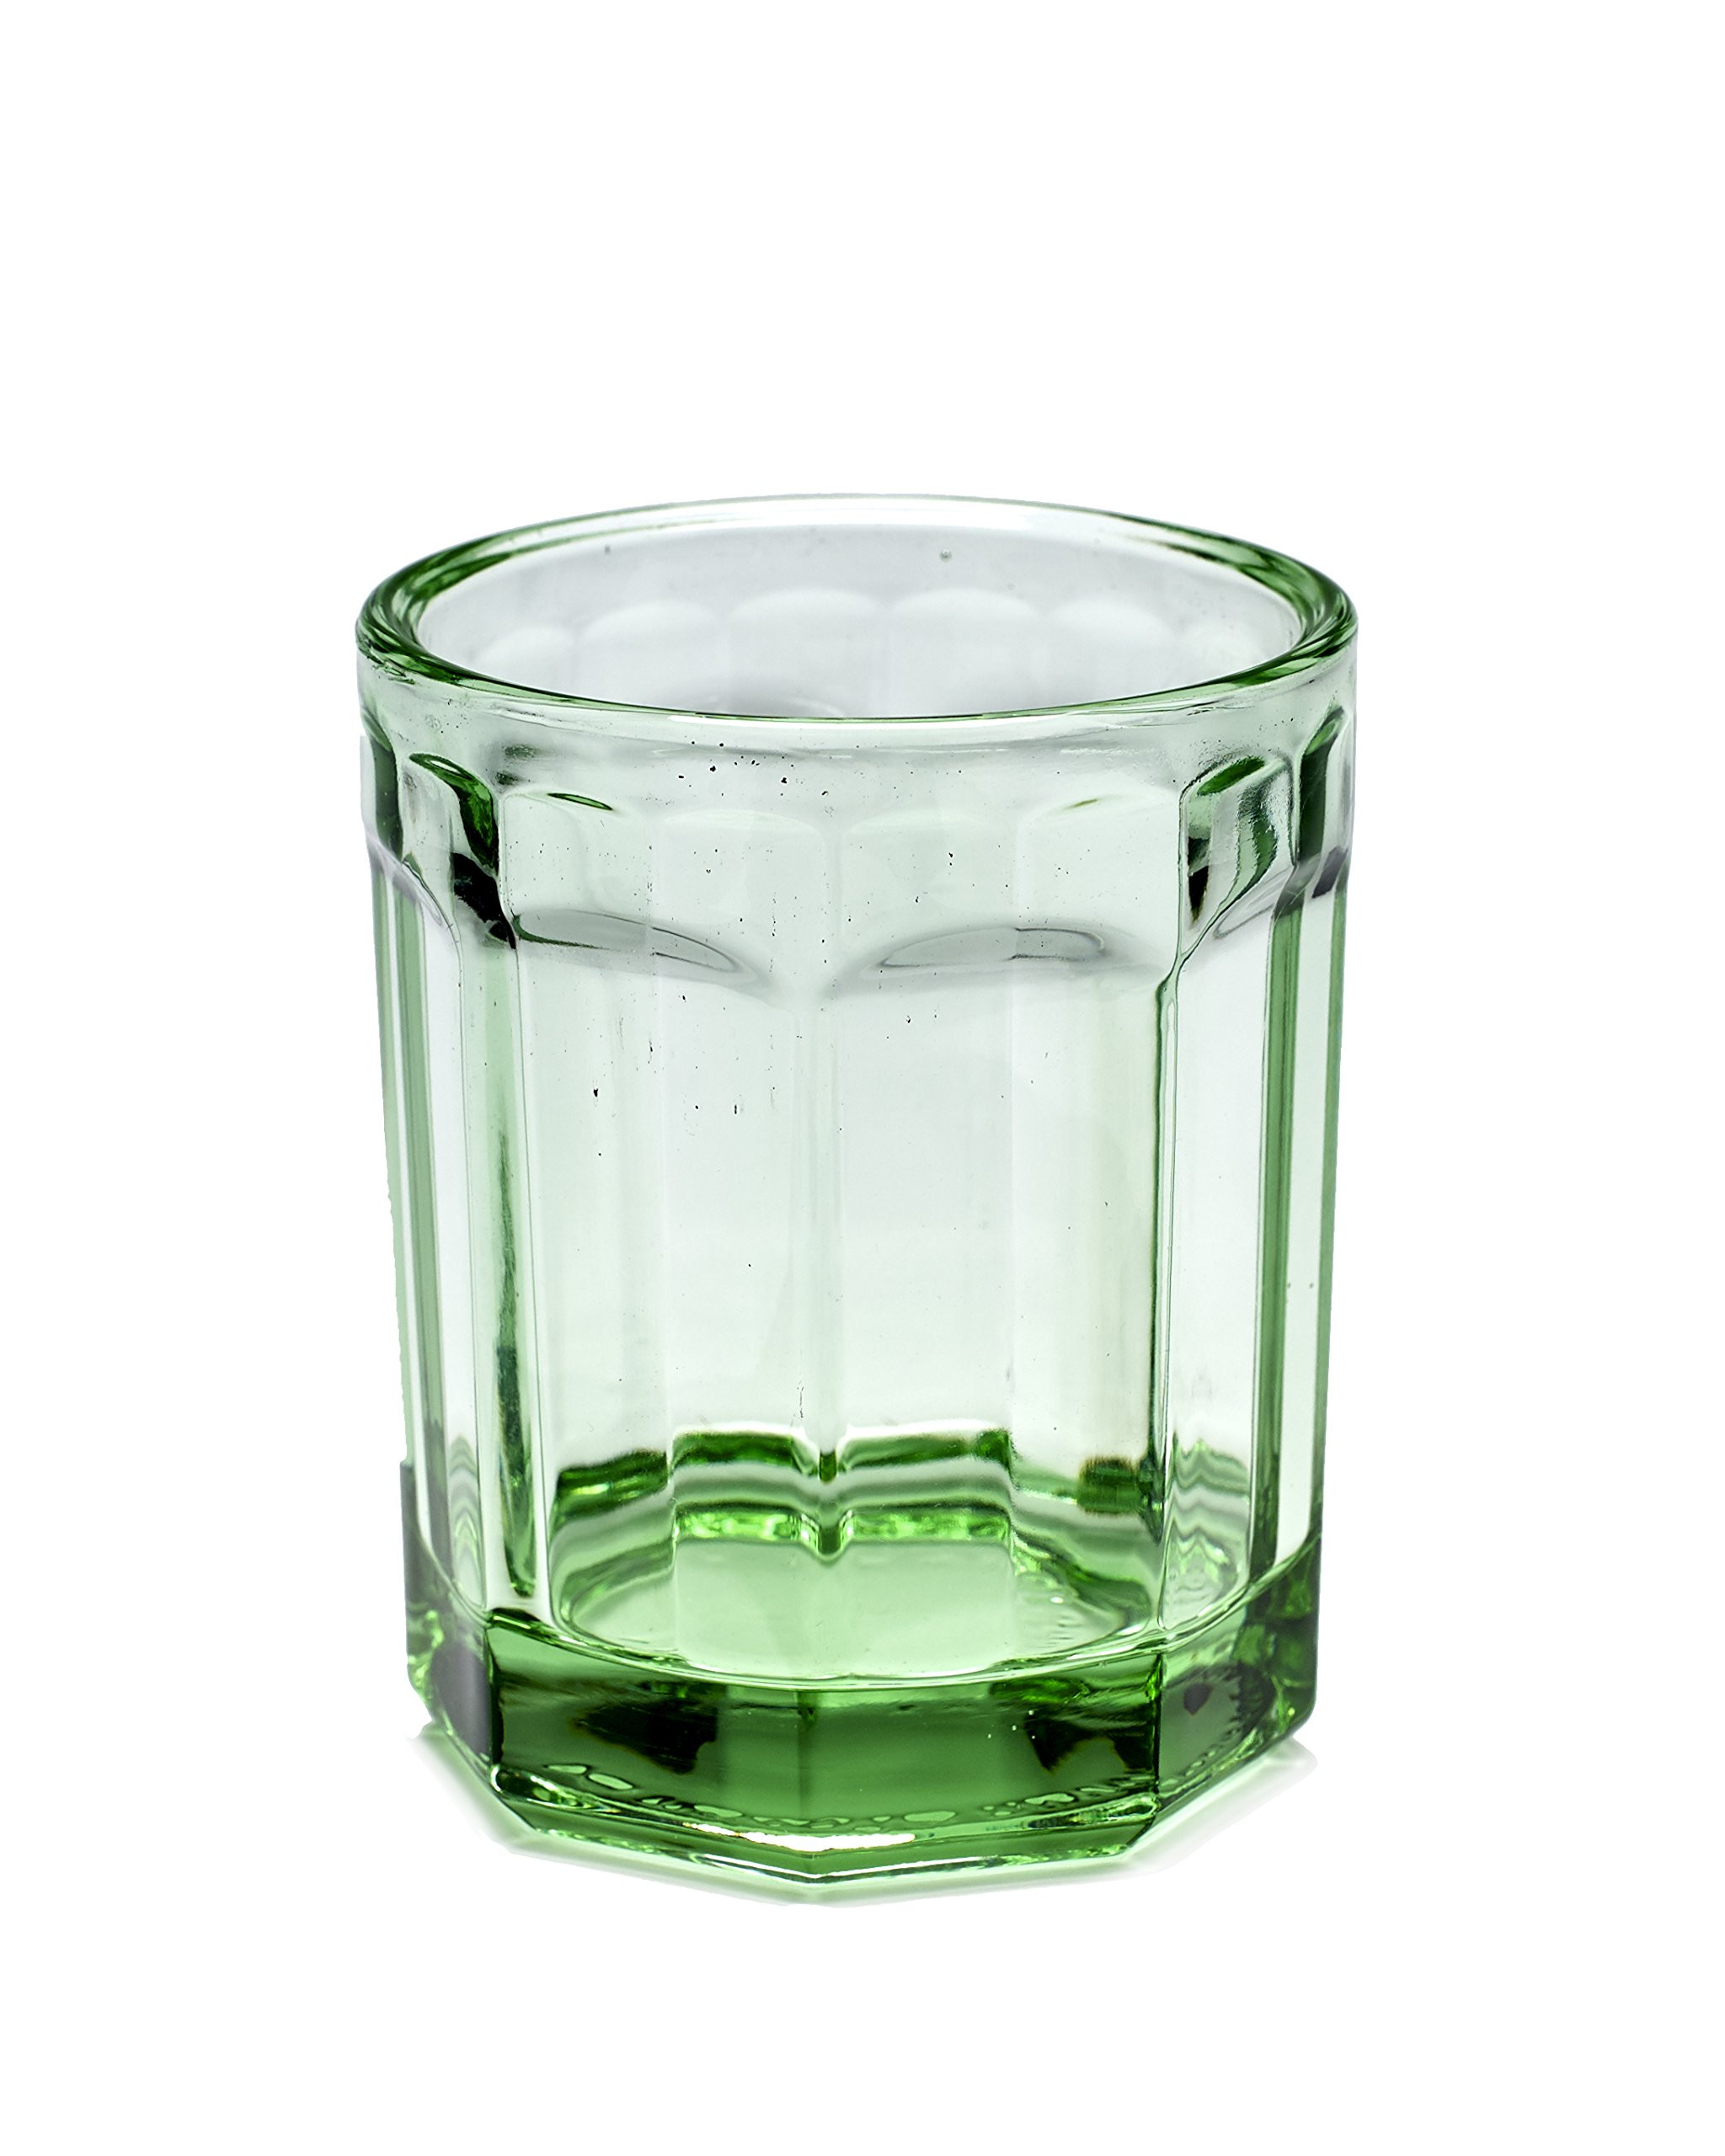 Serax Fish Cocktail Glasses Glass Goods Green One Size